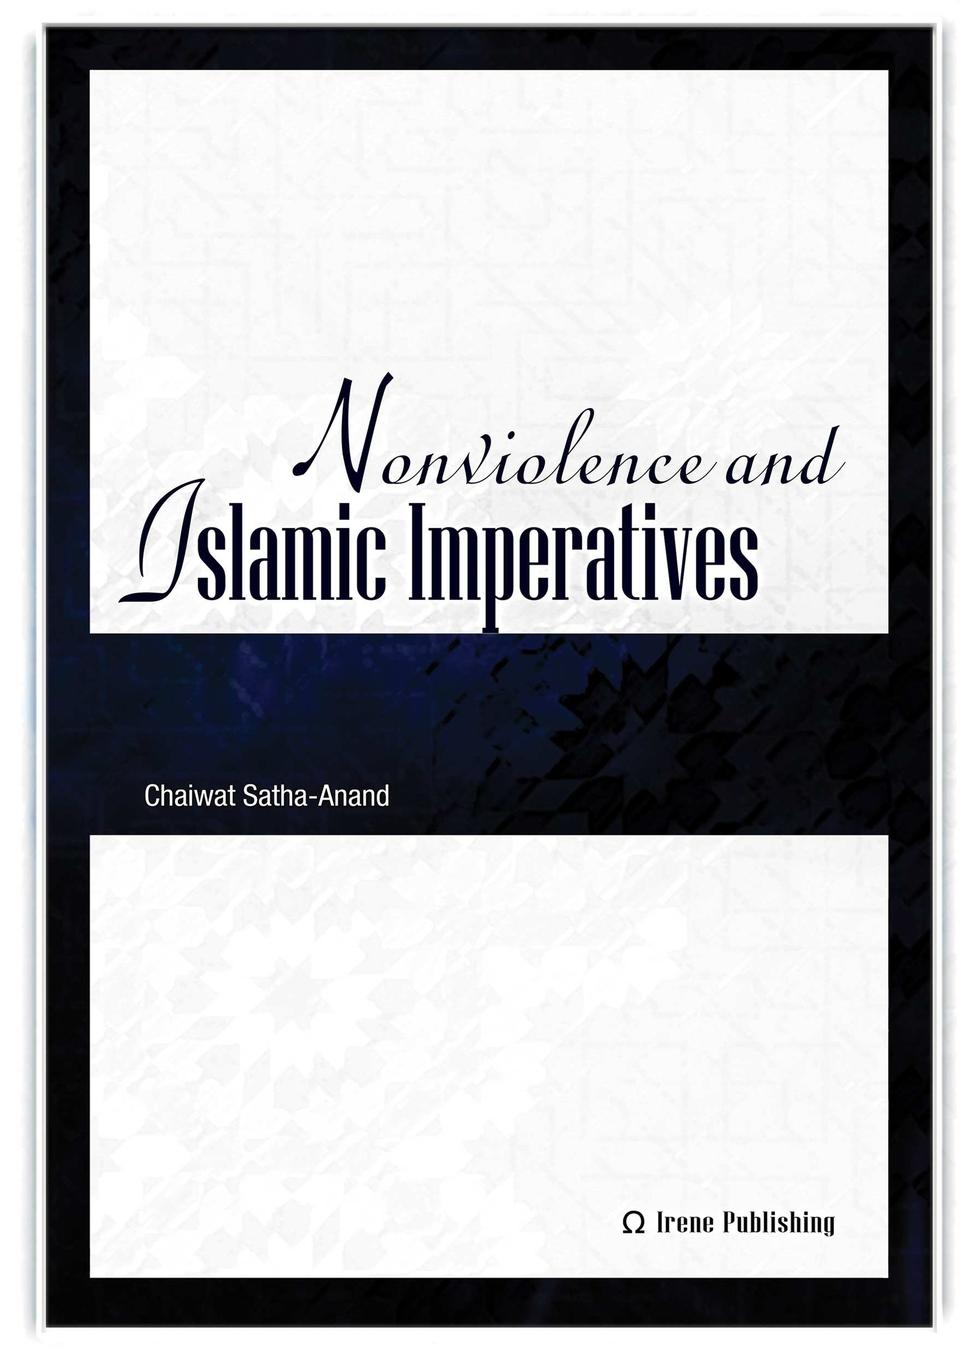 Chaiwat Satha-Anand Nonviolence and Islamic Imperatives